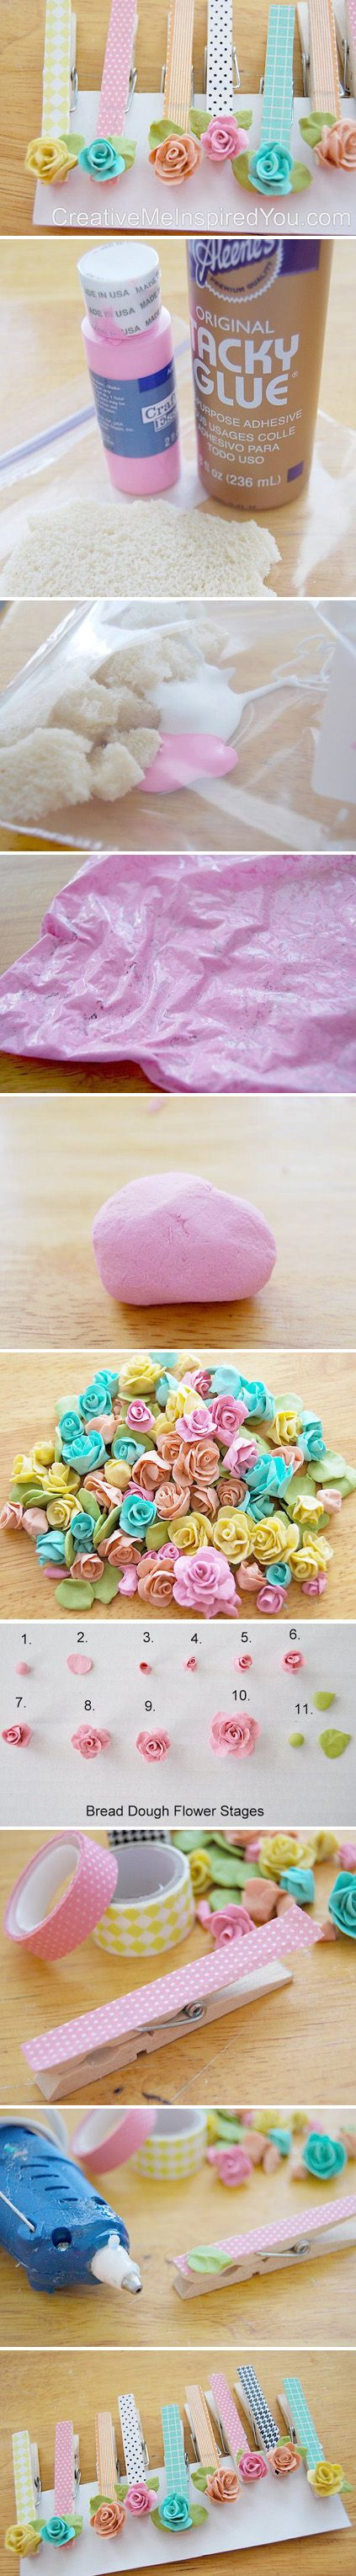 Bread Dough Roses - creativemeinspiredyou.com